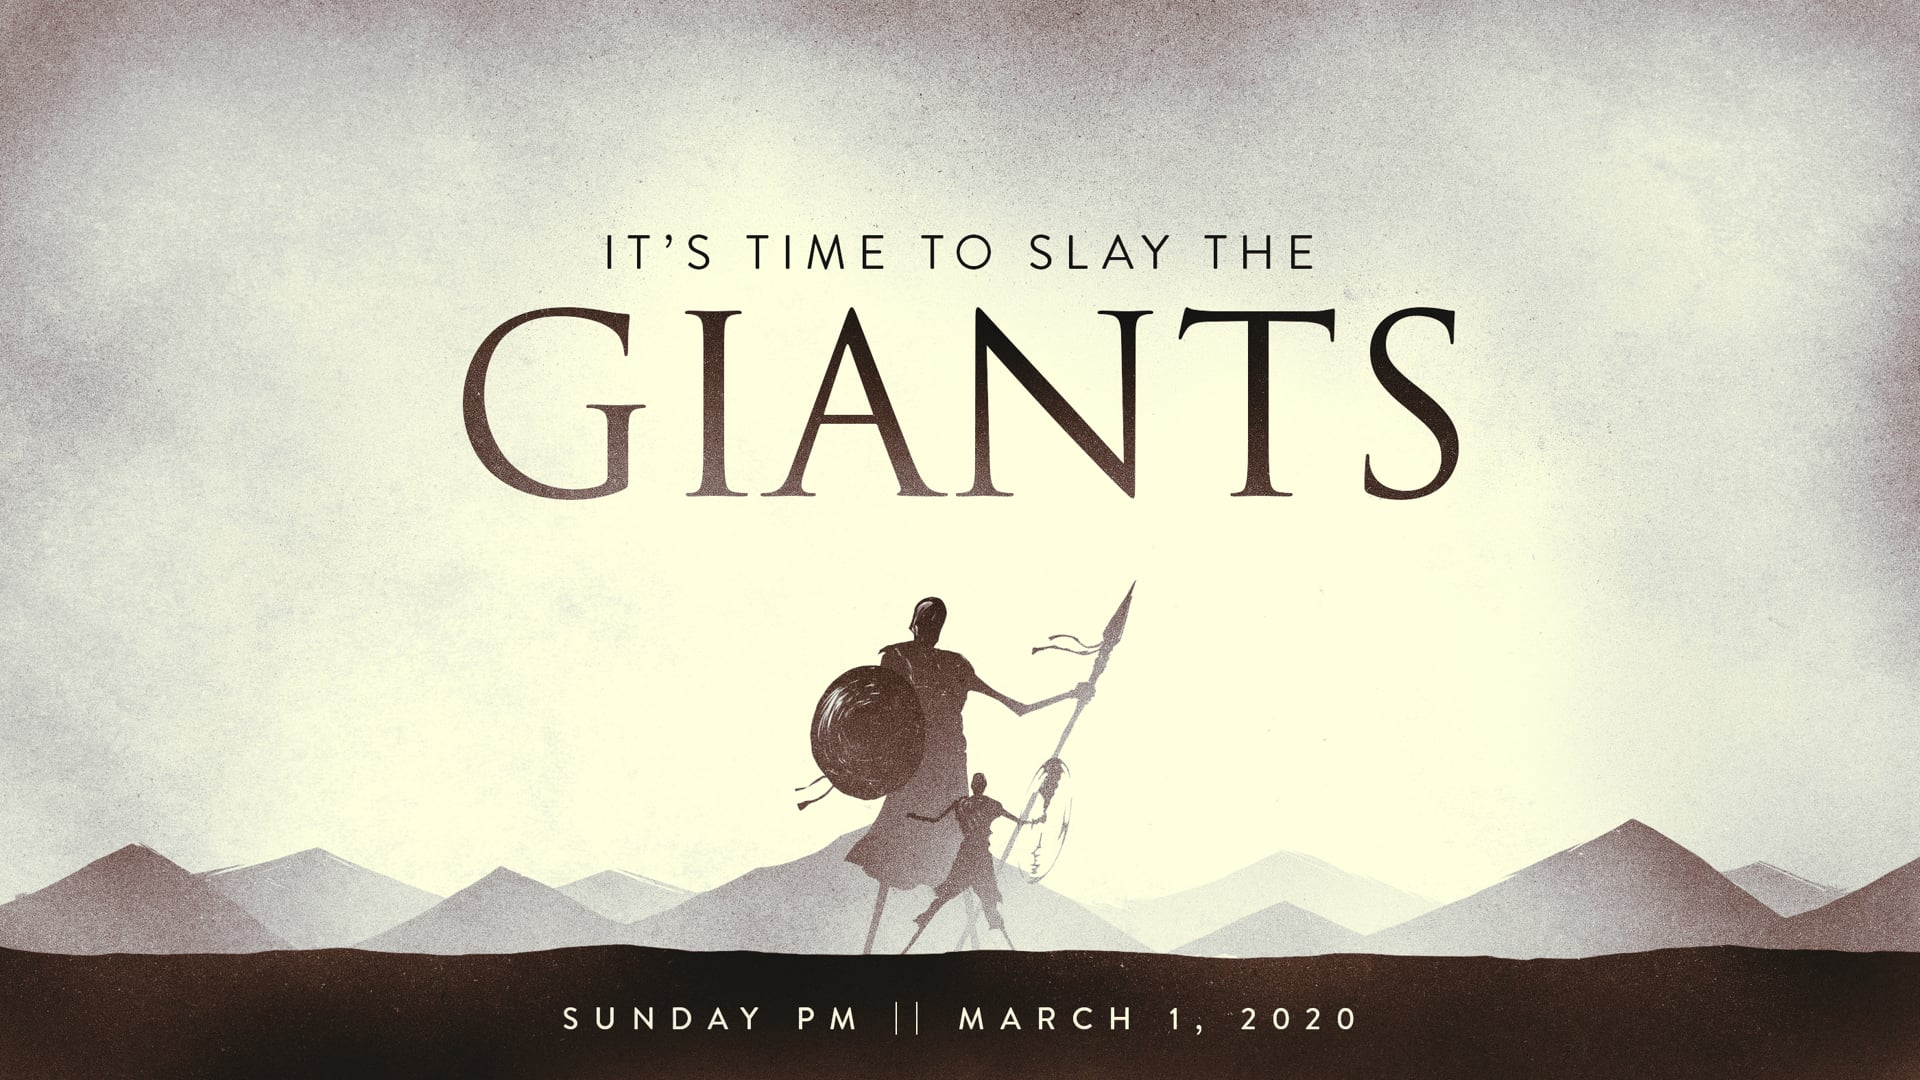 It's Time to Slay the Giants